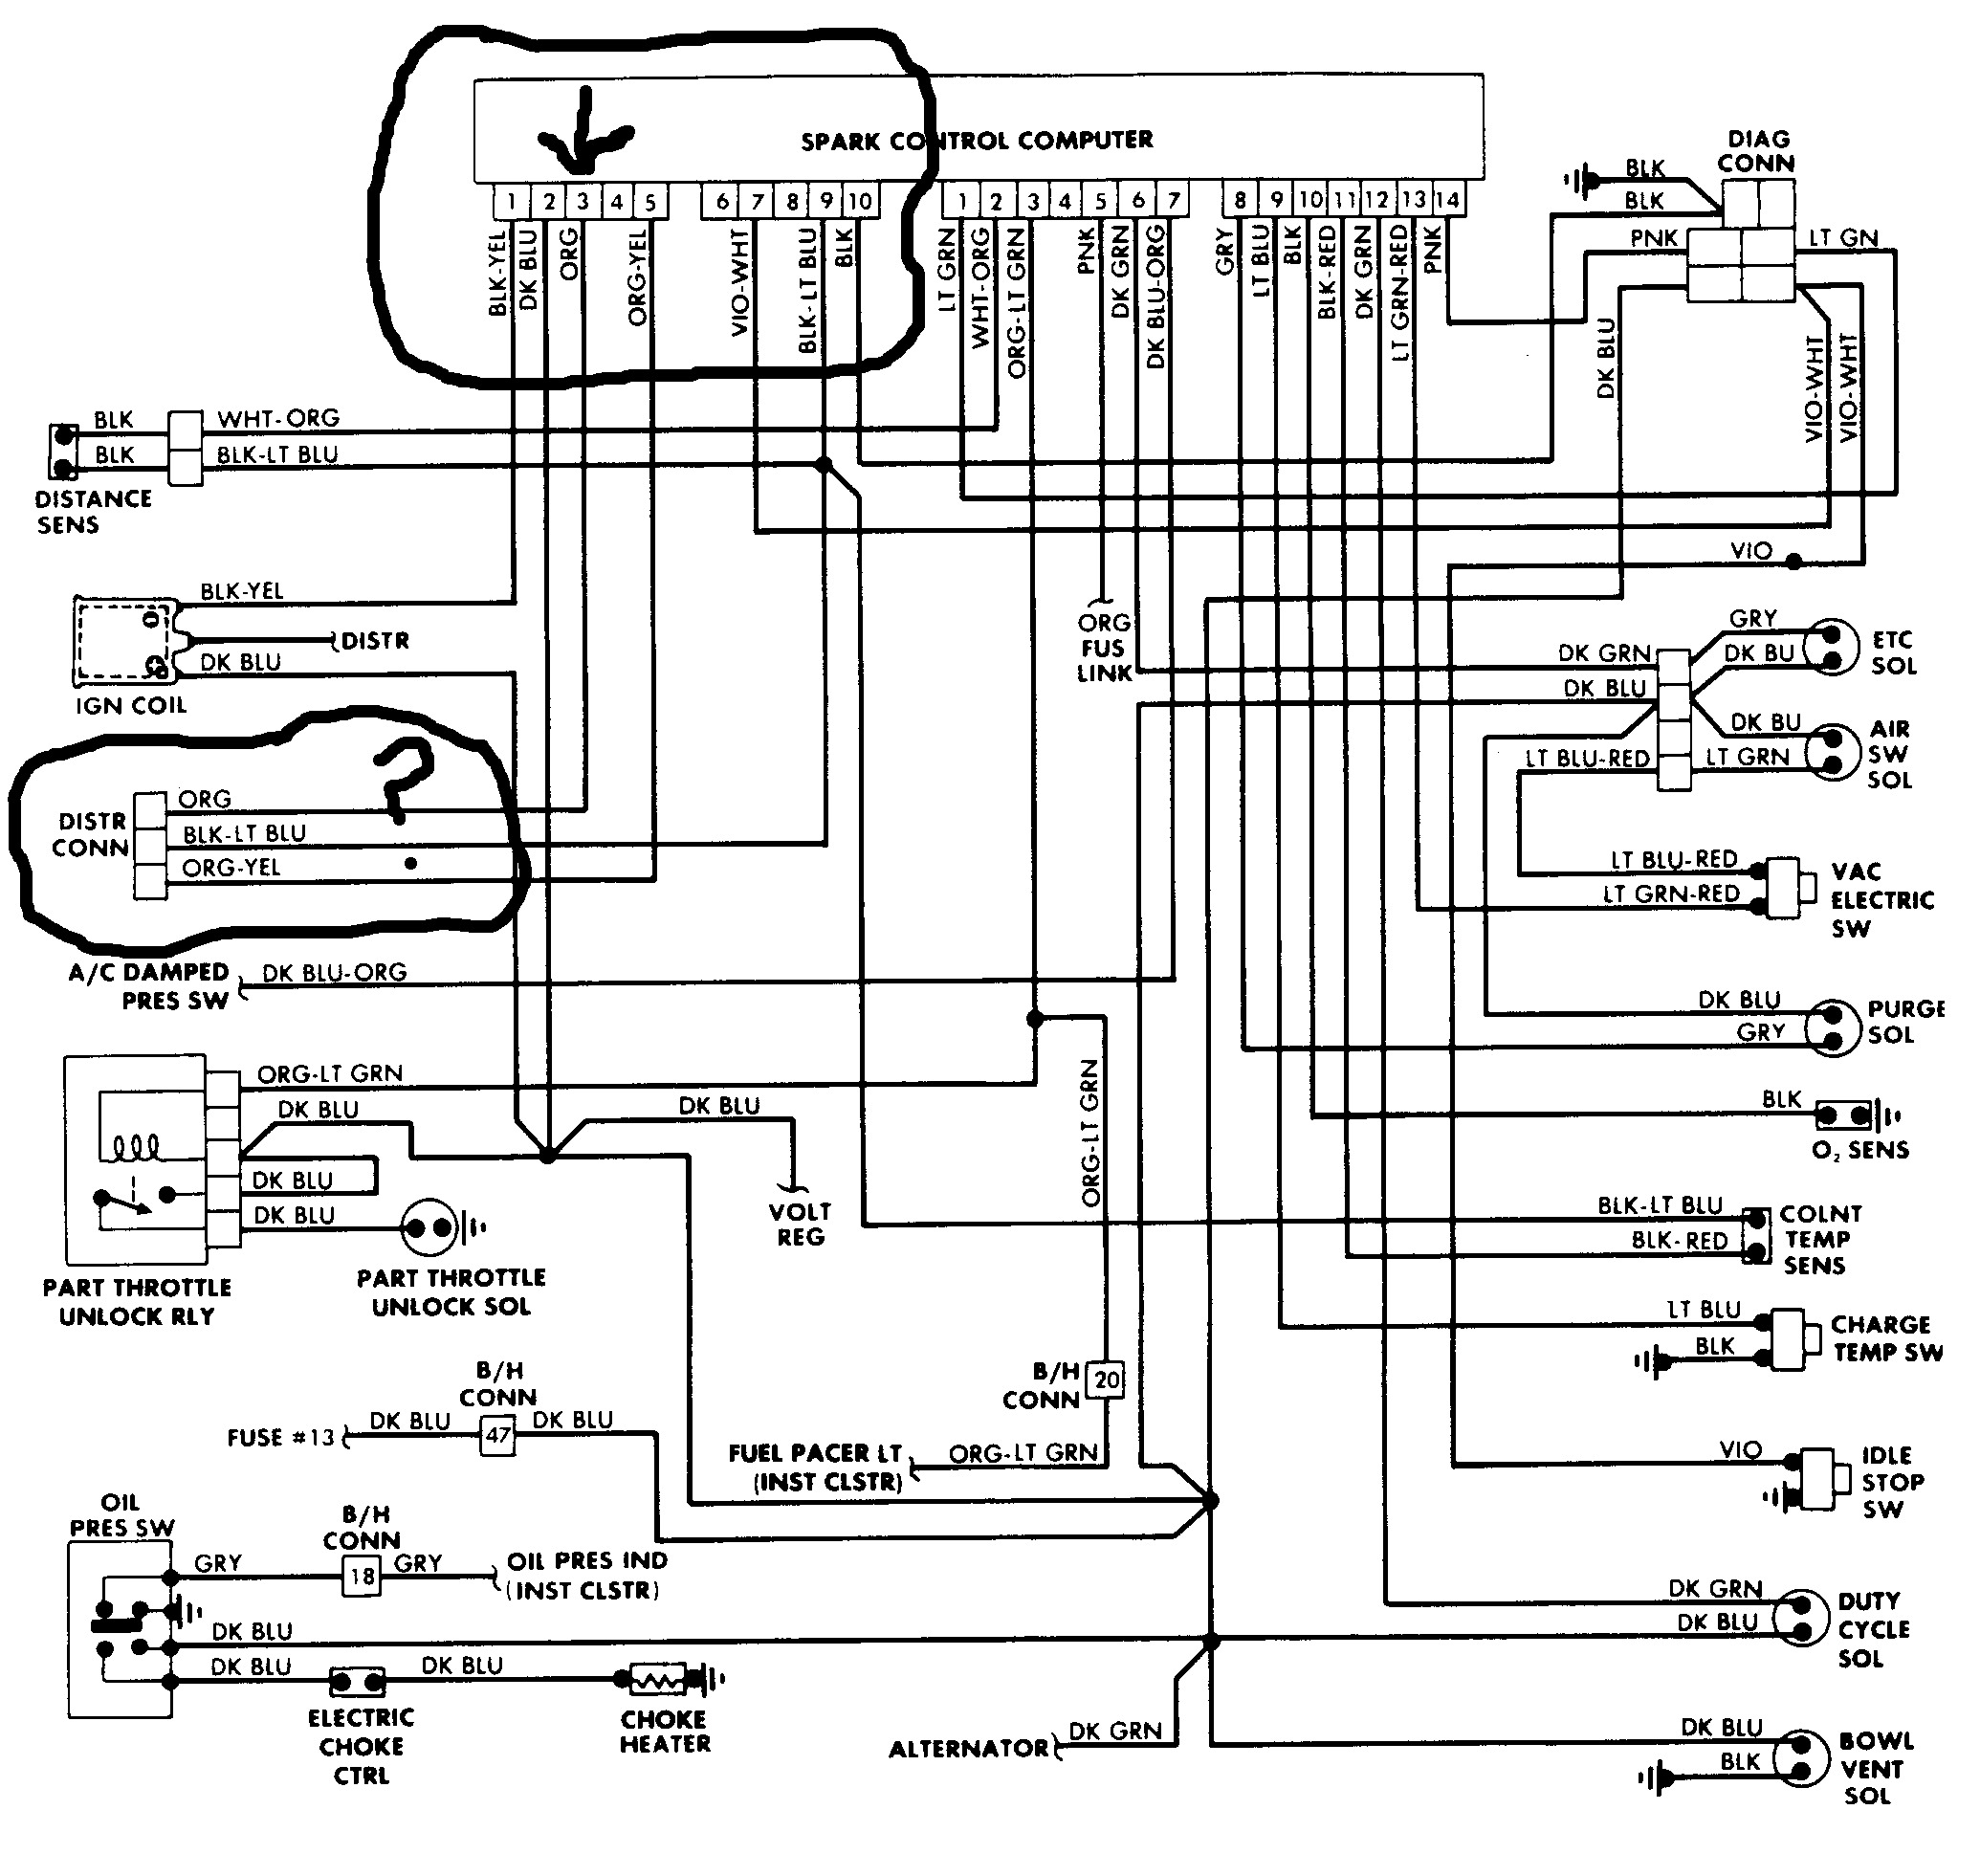 Ignition Coil Wiring Diagram For 89 Dodge Dakota Wiring